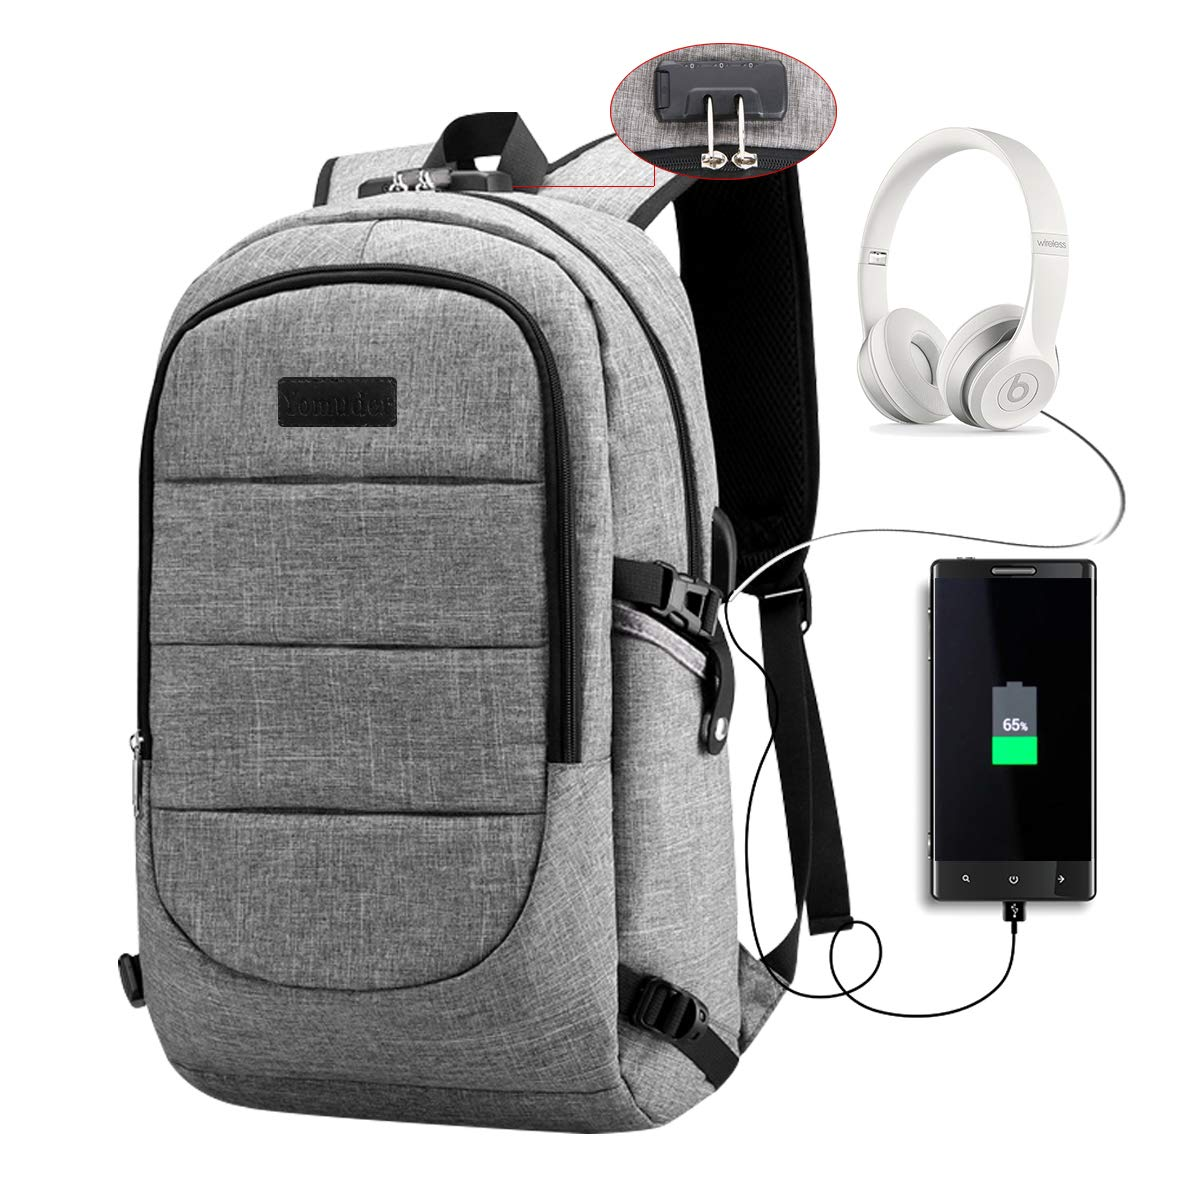 Yomuder Laptop Backpack Computer Backpack for Men Women Anti Theft Students Travel Business Water Resistant Laptop Bag with USB Charging Port Fits Laptop Notebook up to 15.6 Inches Grey